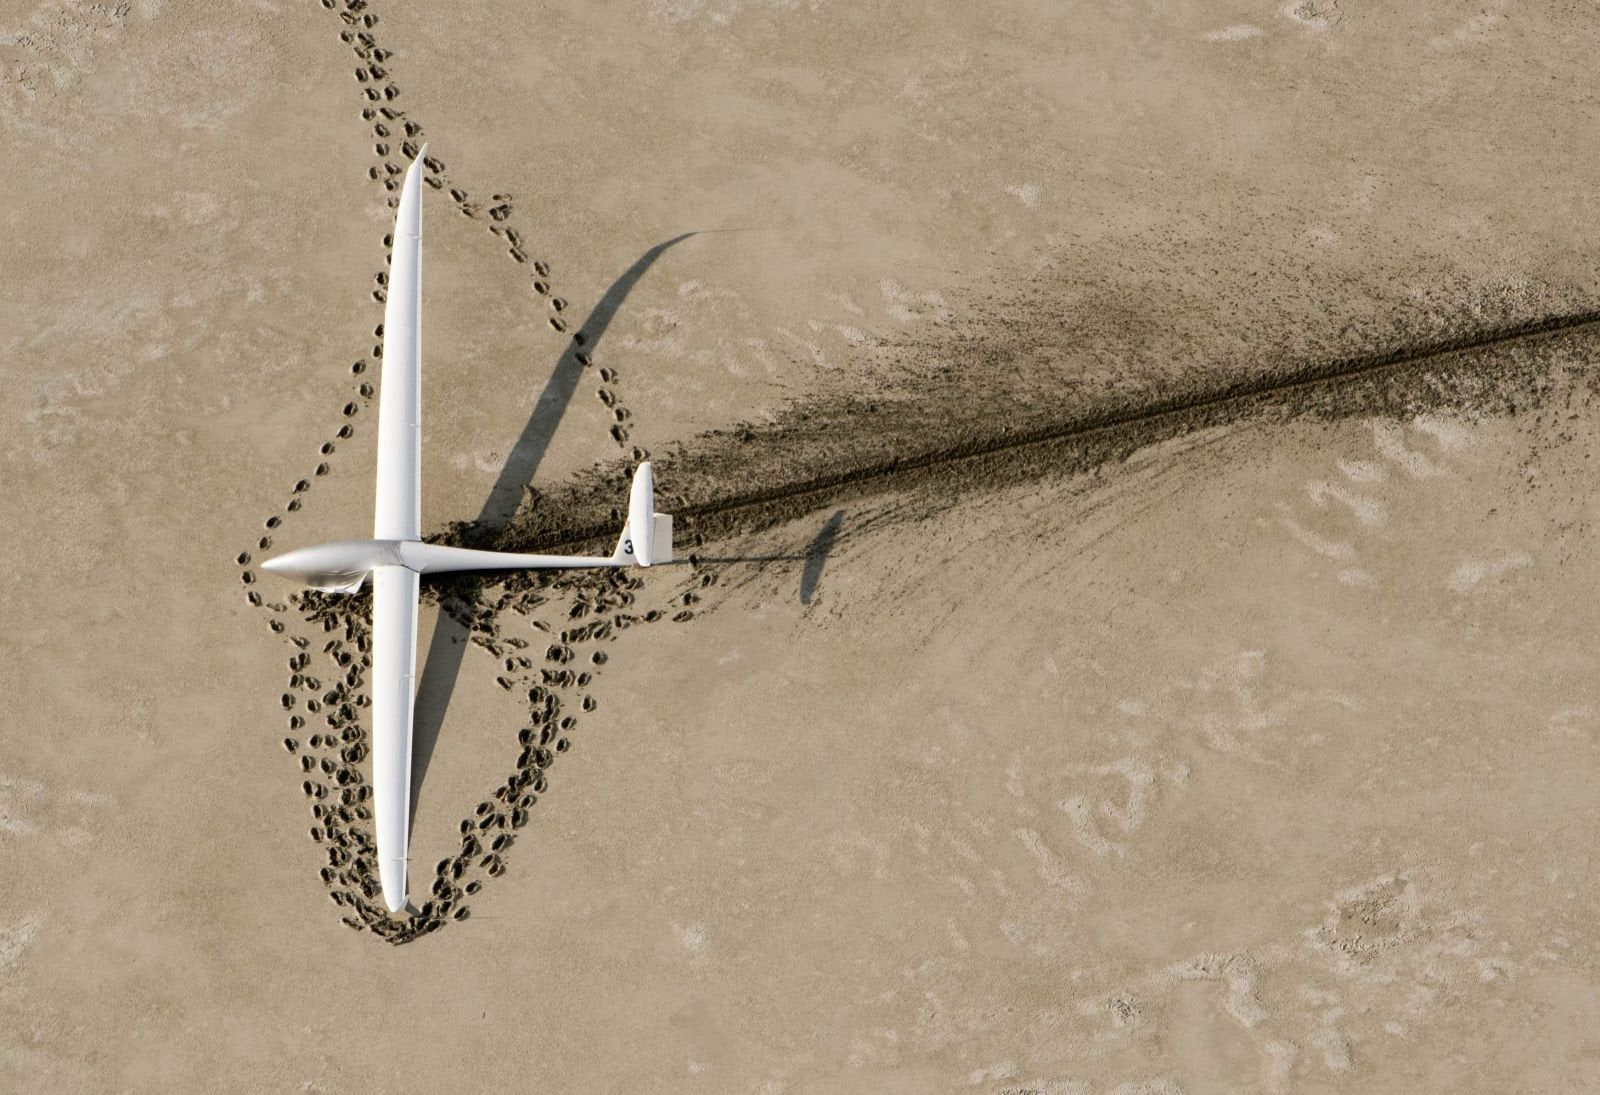 1600x1095 Glider that landed in a dry lake bed : wallpapers